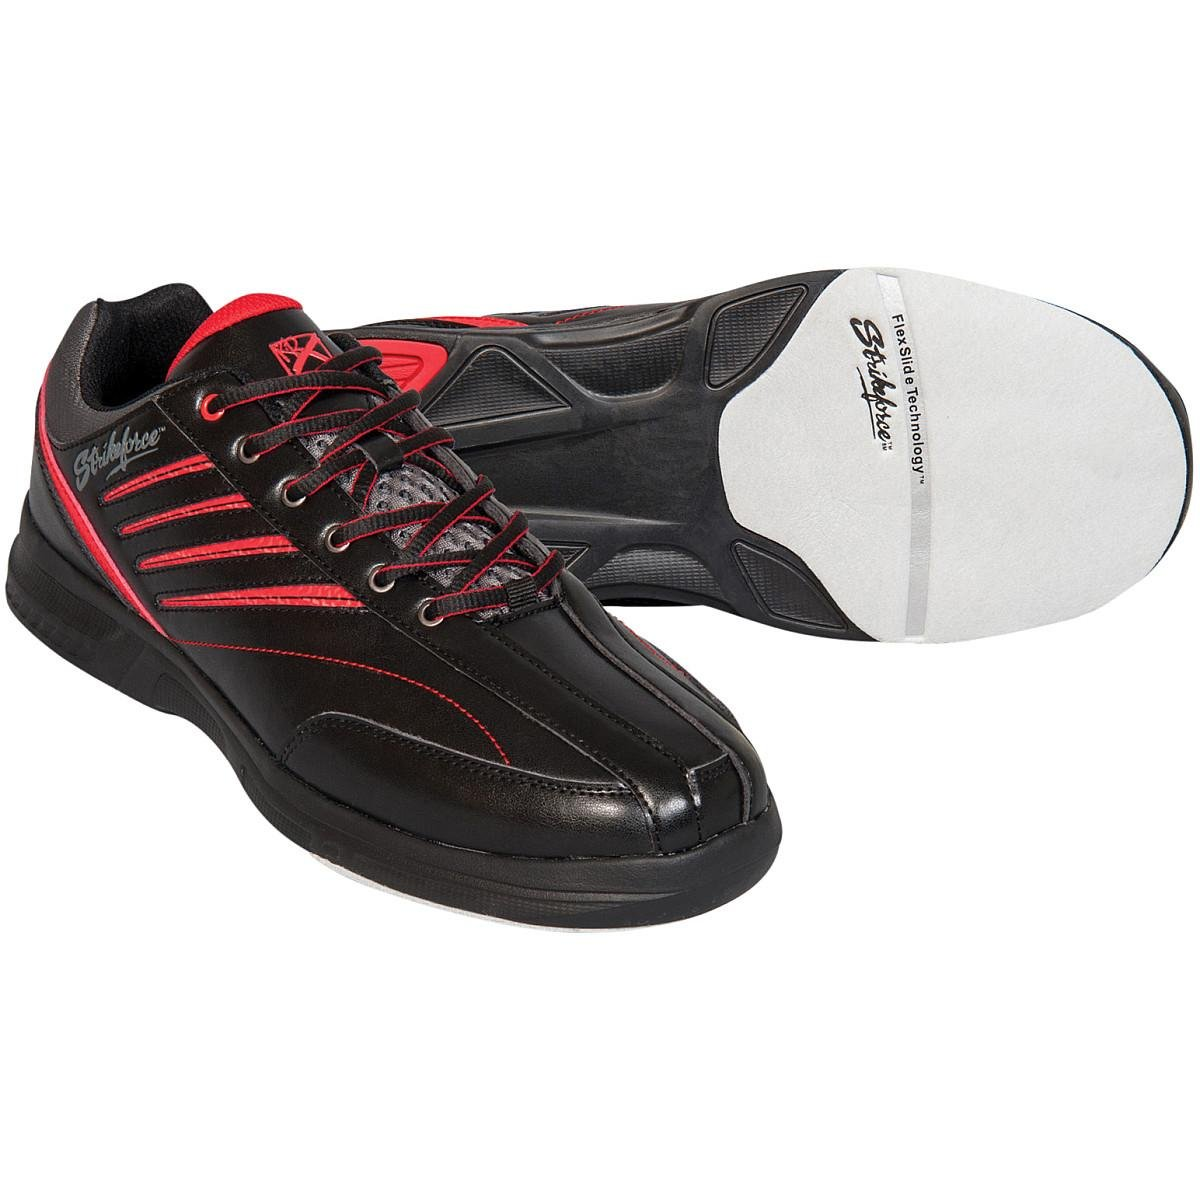 KR Strikeforce M-038-115 Crossfire Lite Bowling Shoes, Black/Red, Size 11.5